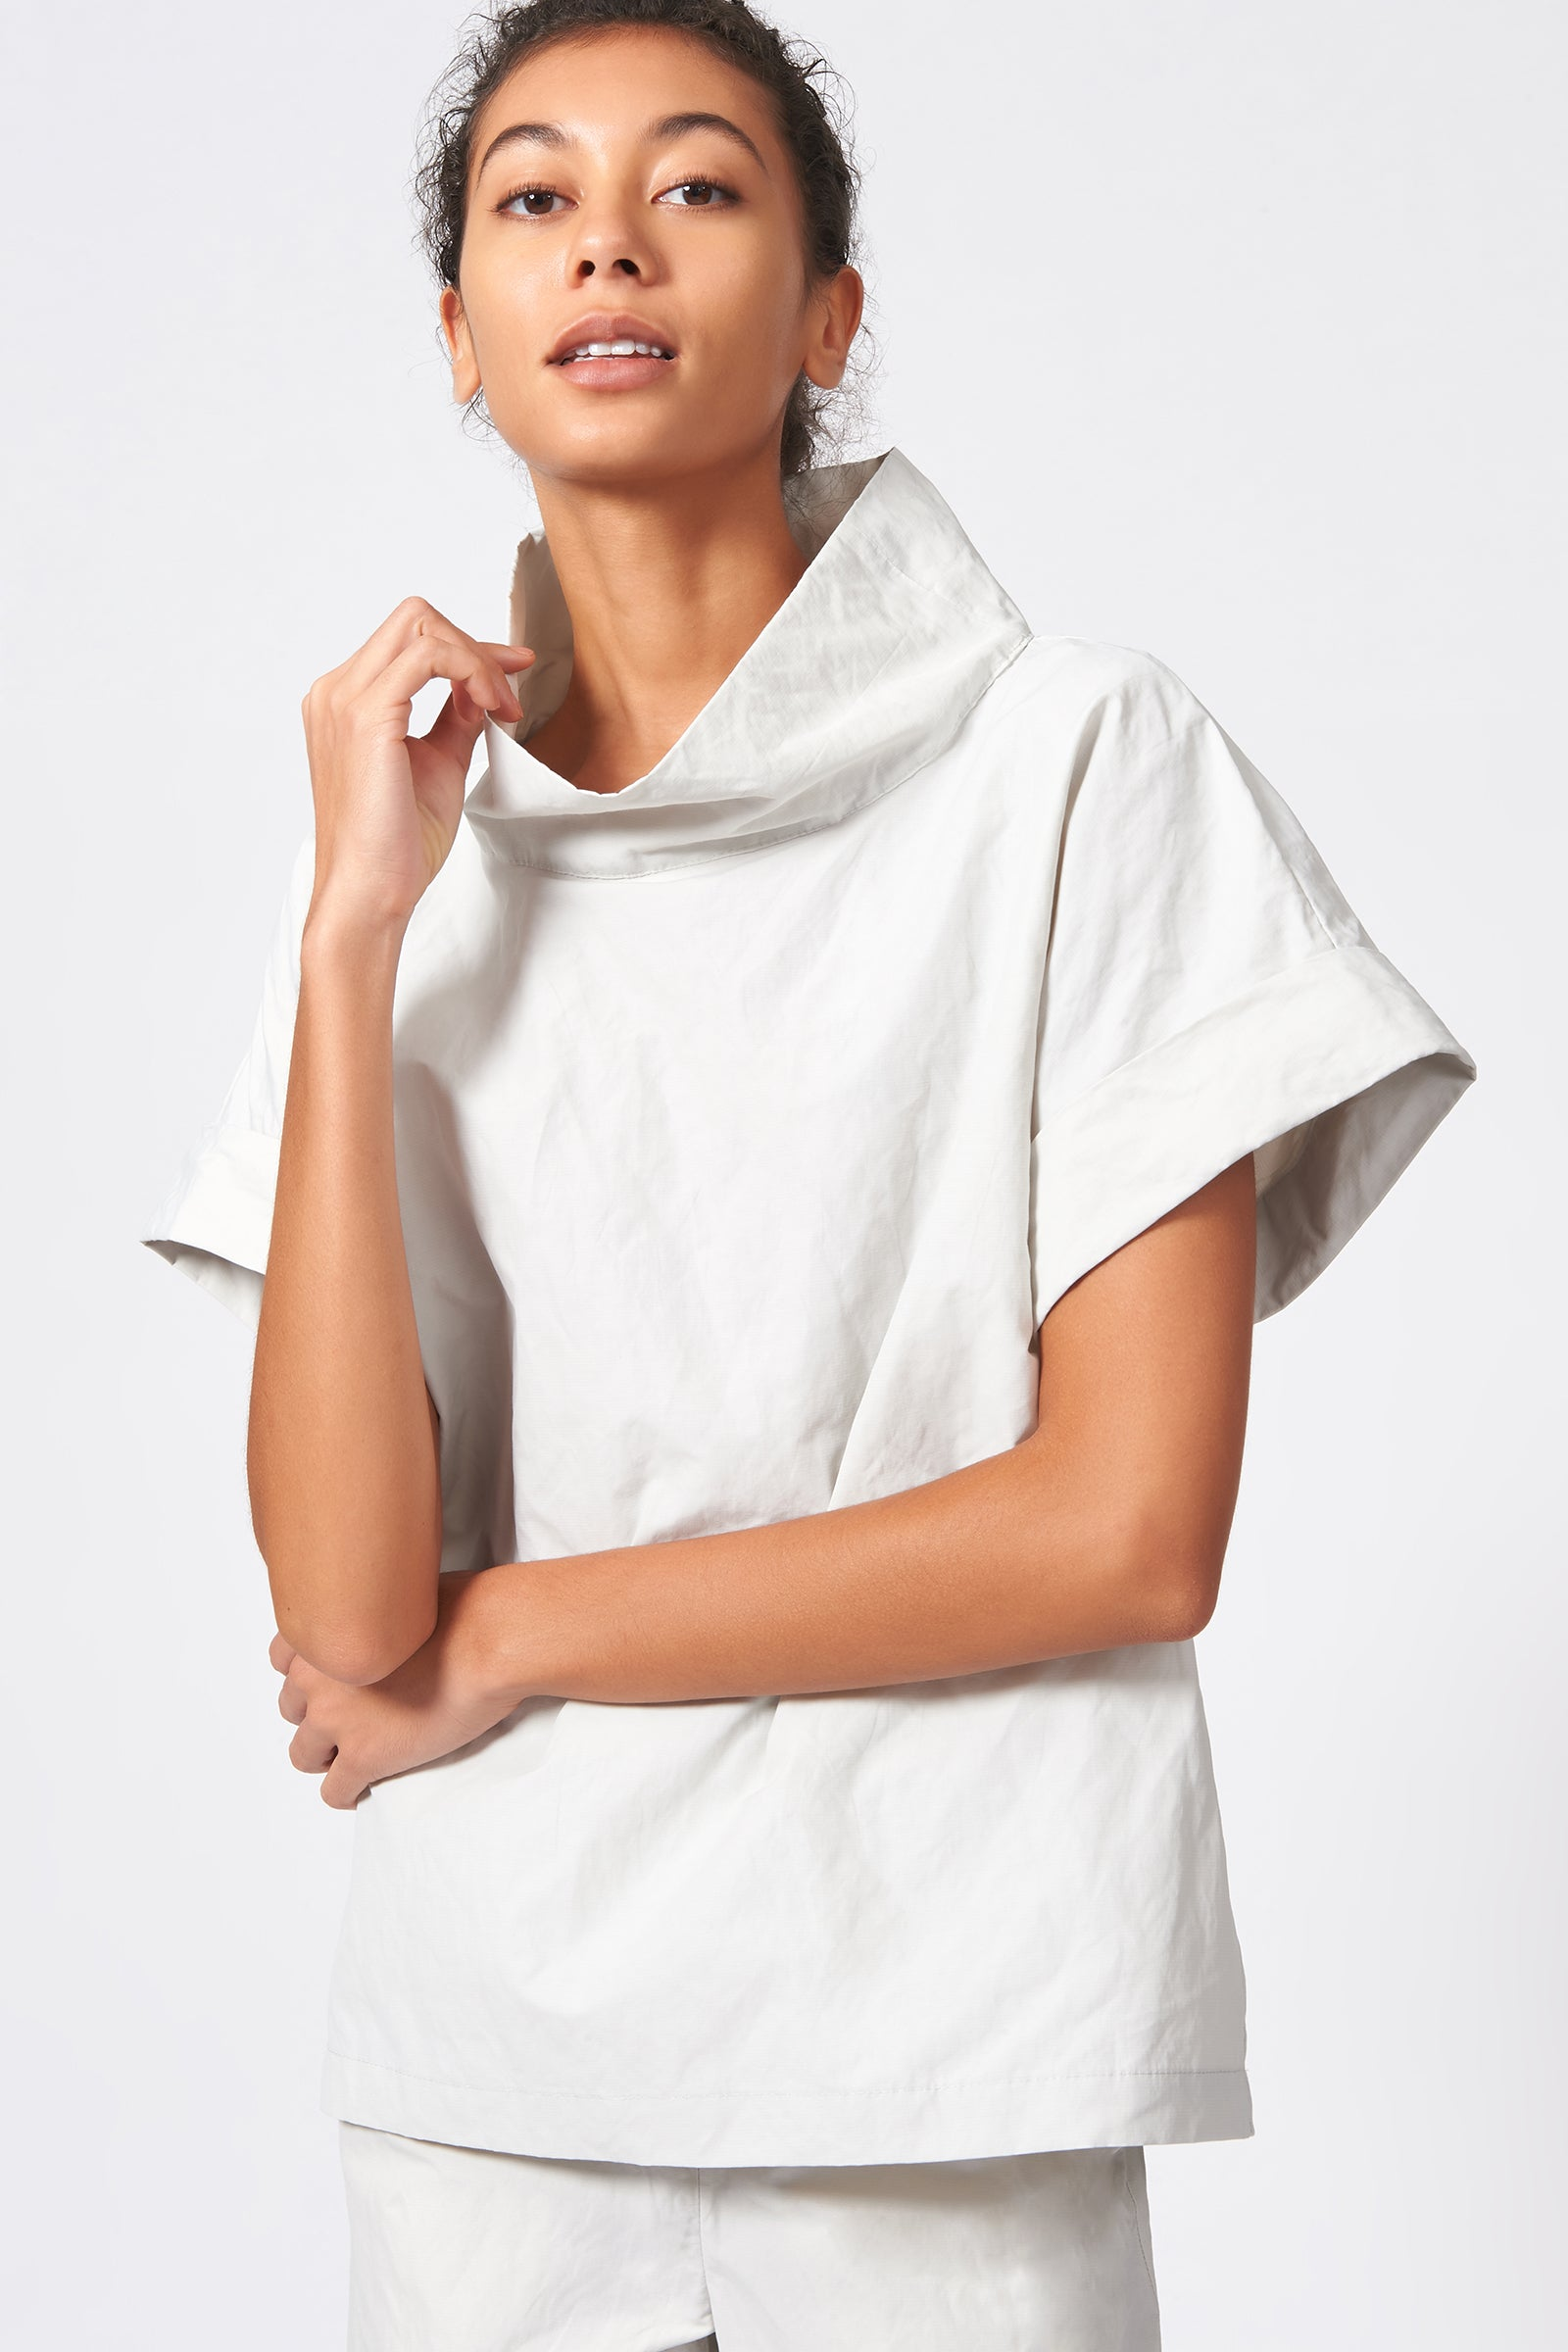 Kal Rieman Cuffed Kimono Tee in Stone Cotton Nylon on Model Front Close-up View